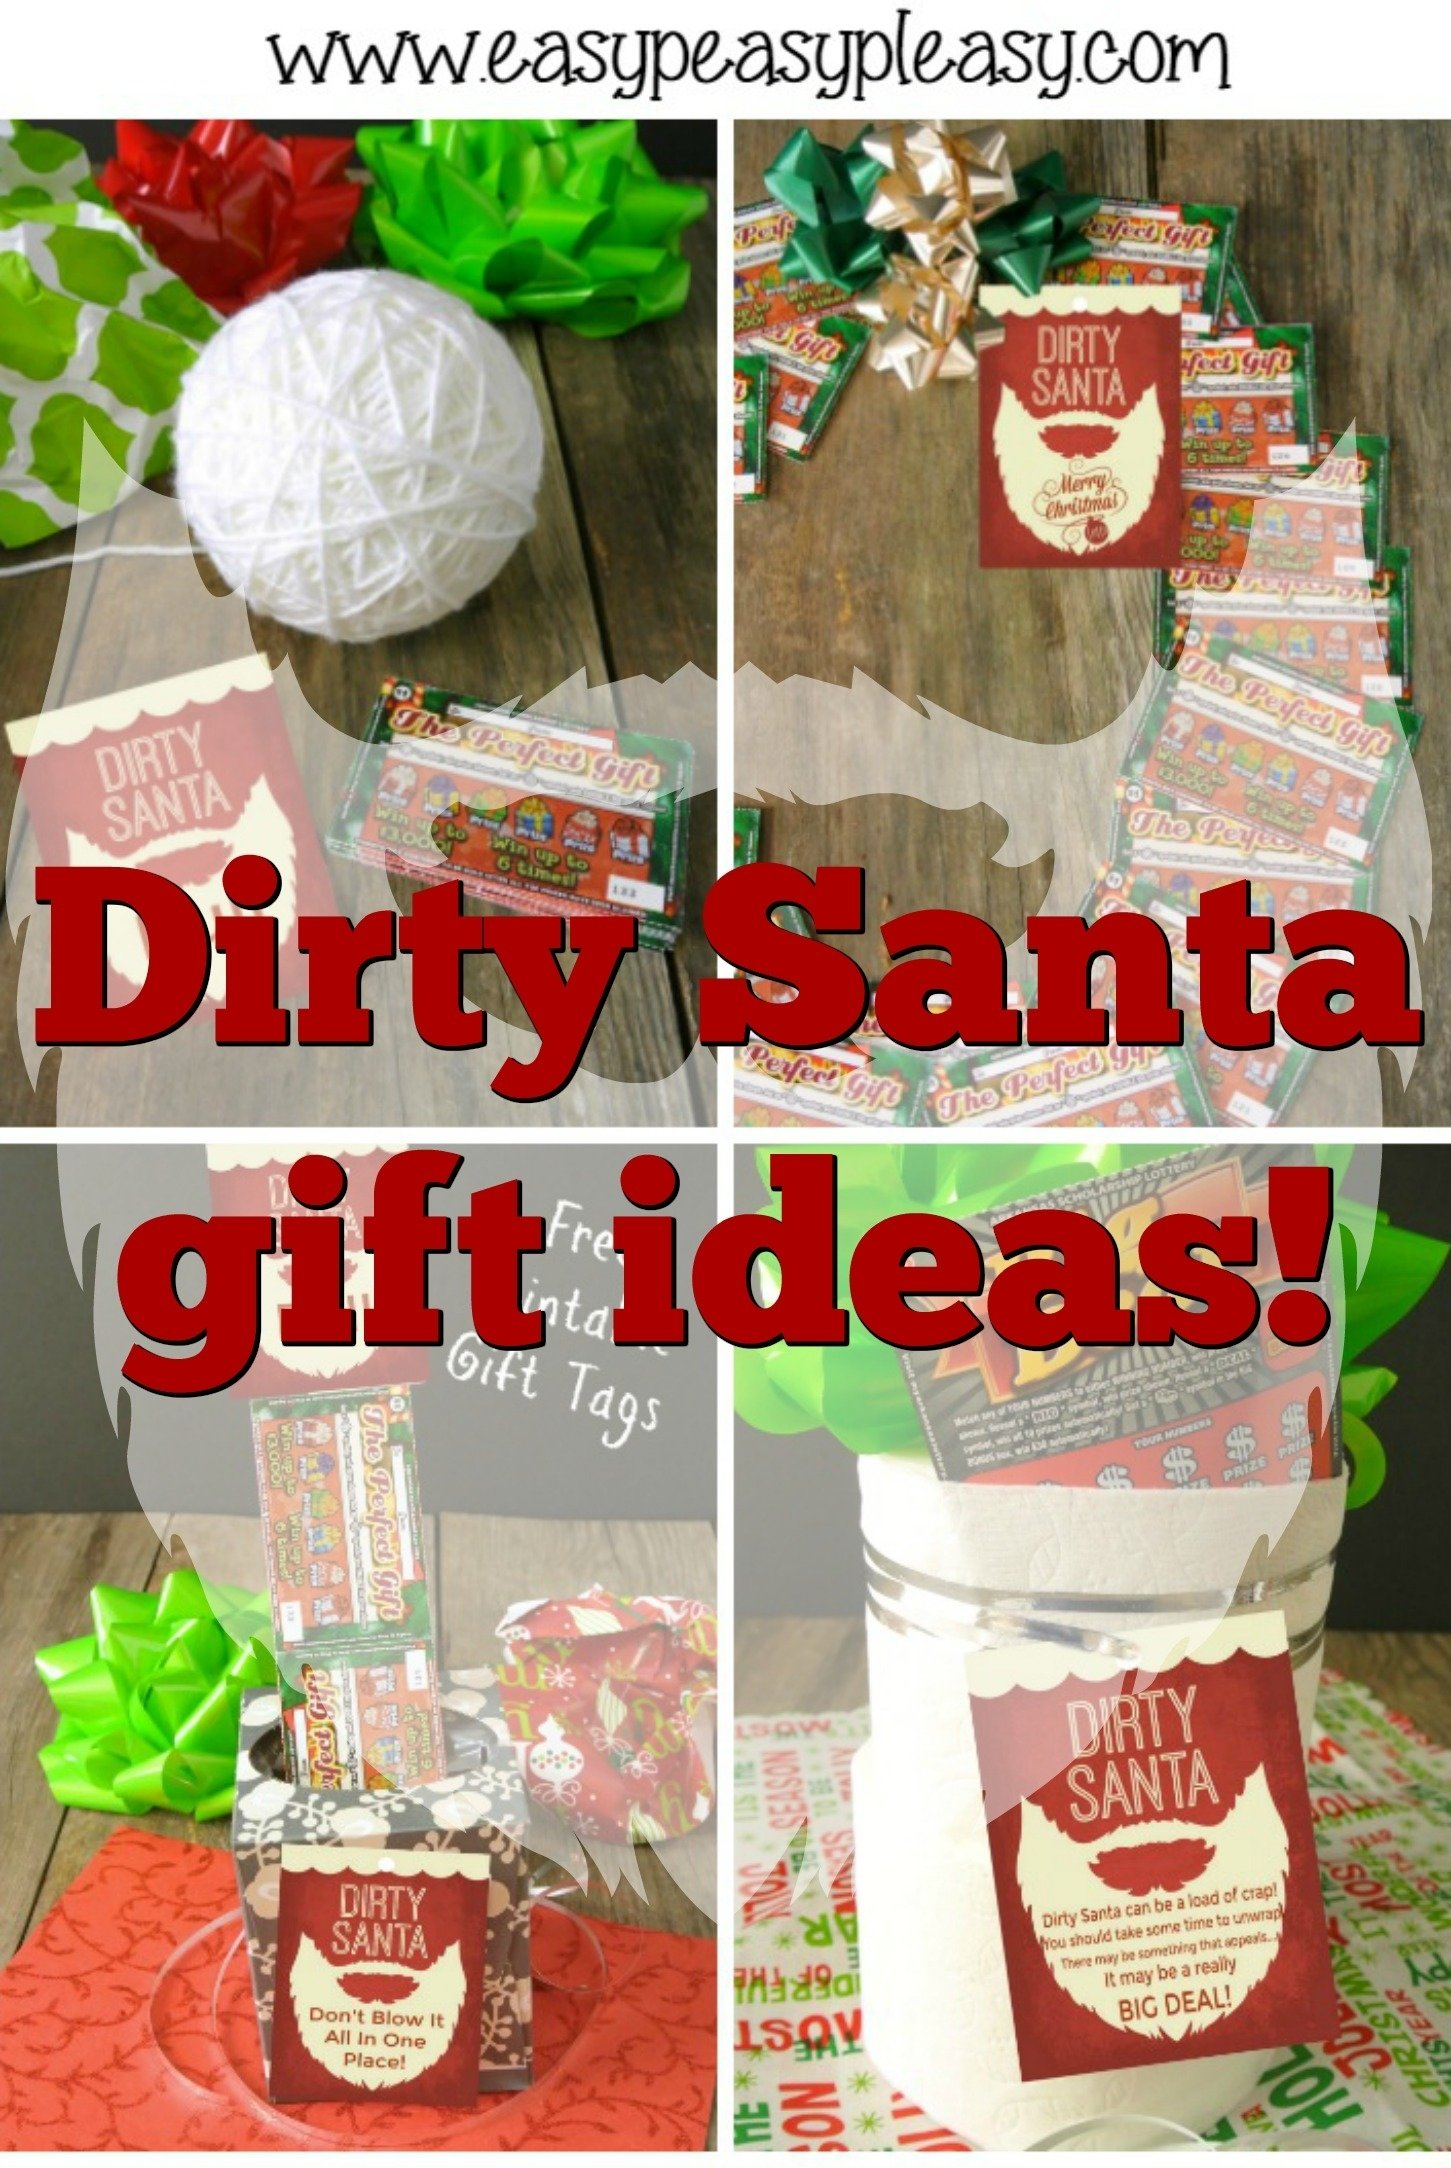 dirty santa + lottery tickets = the perfect gift - easy peasy pleasy